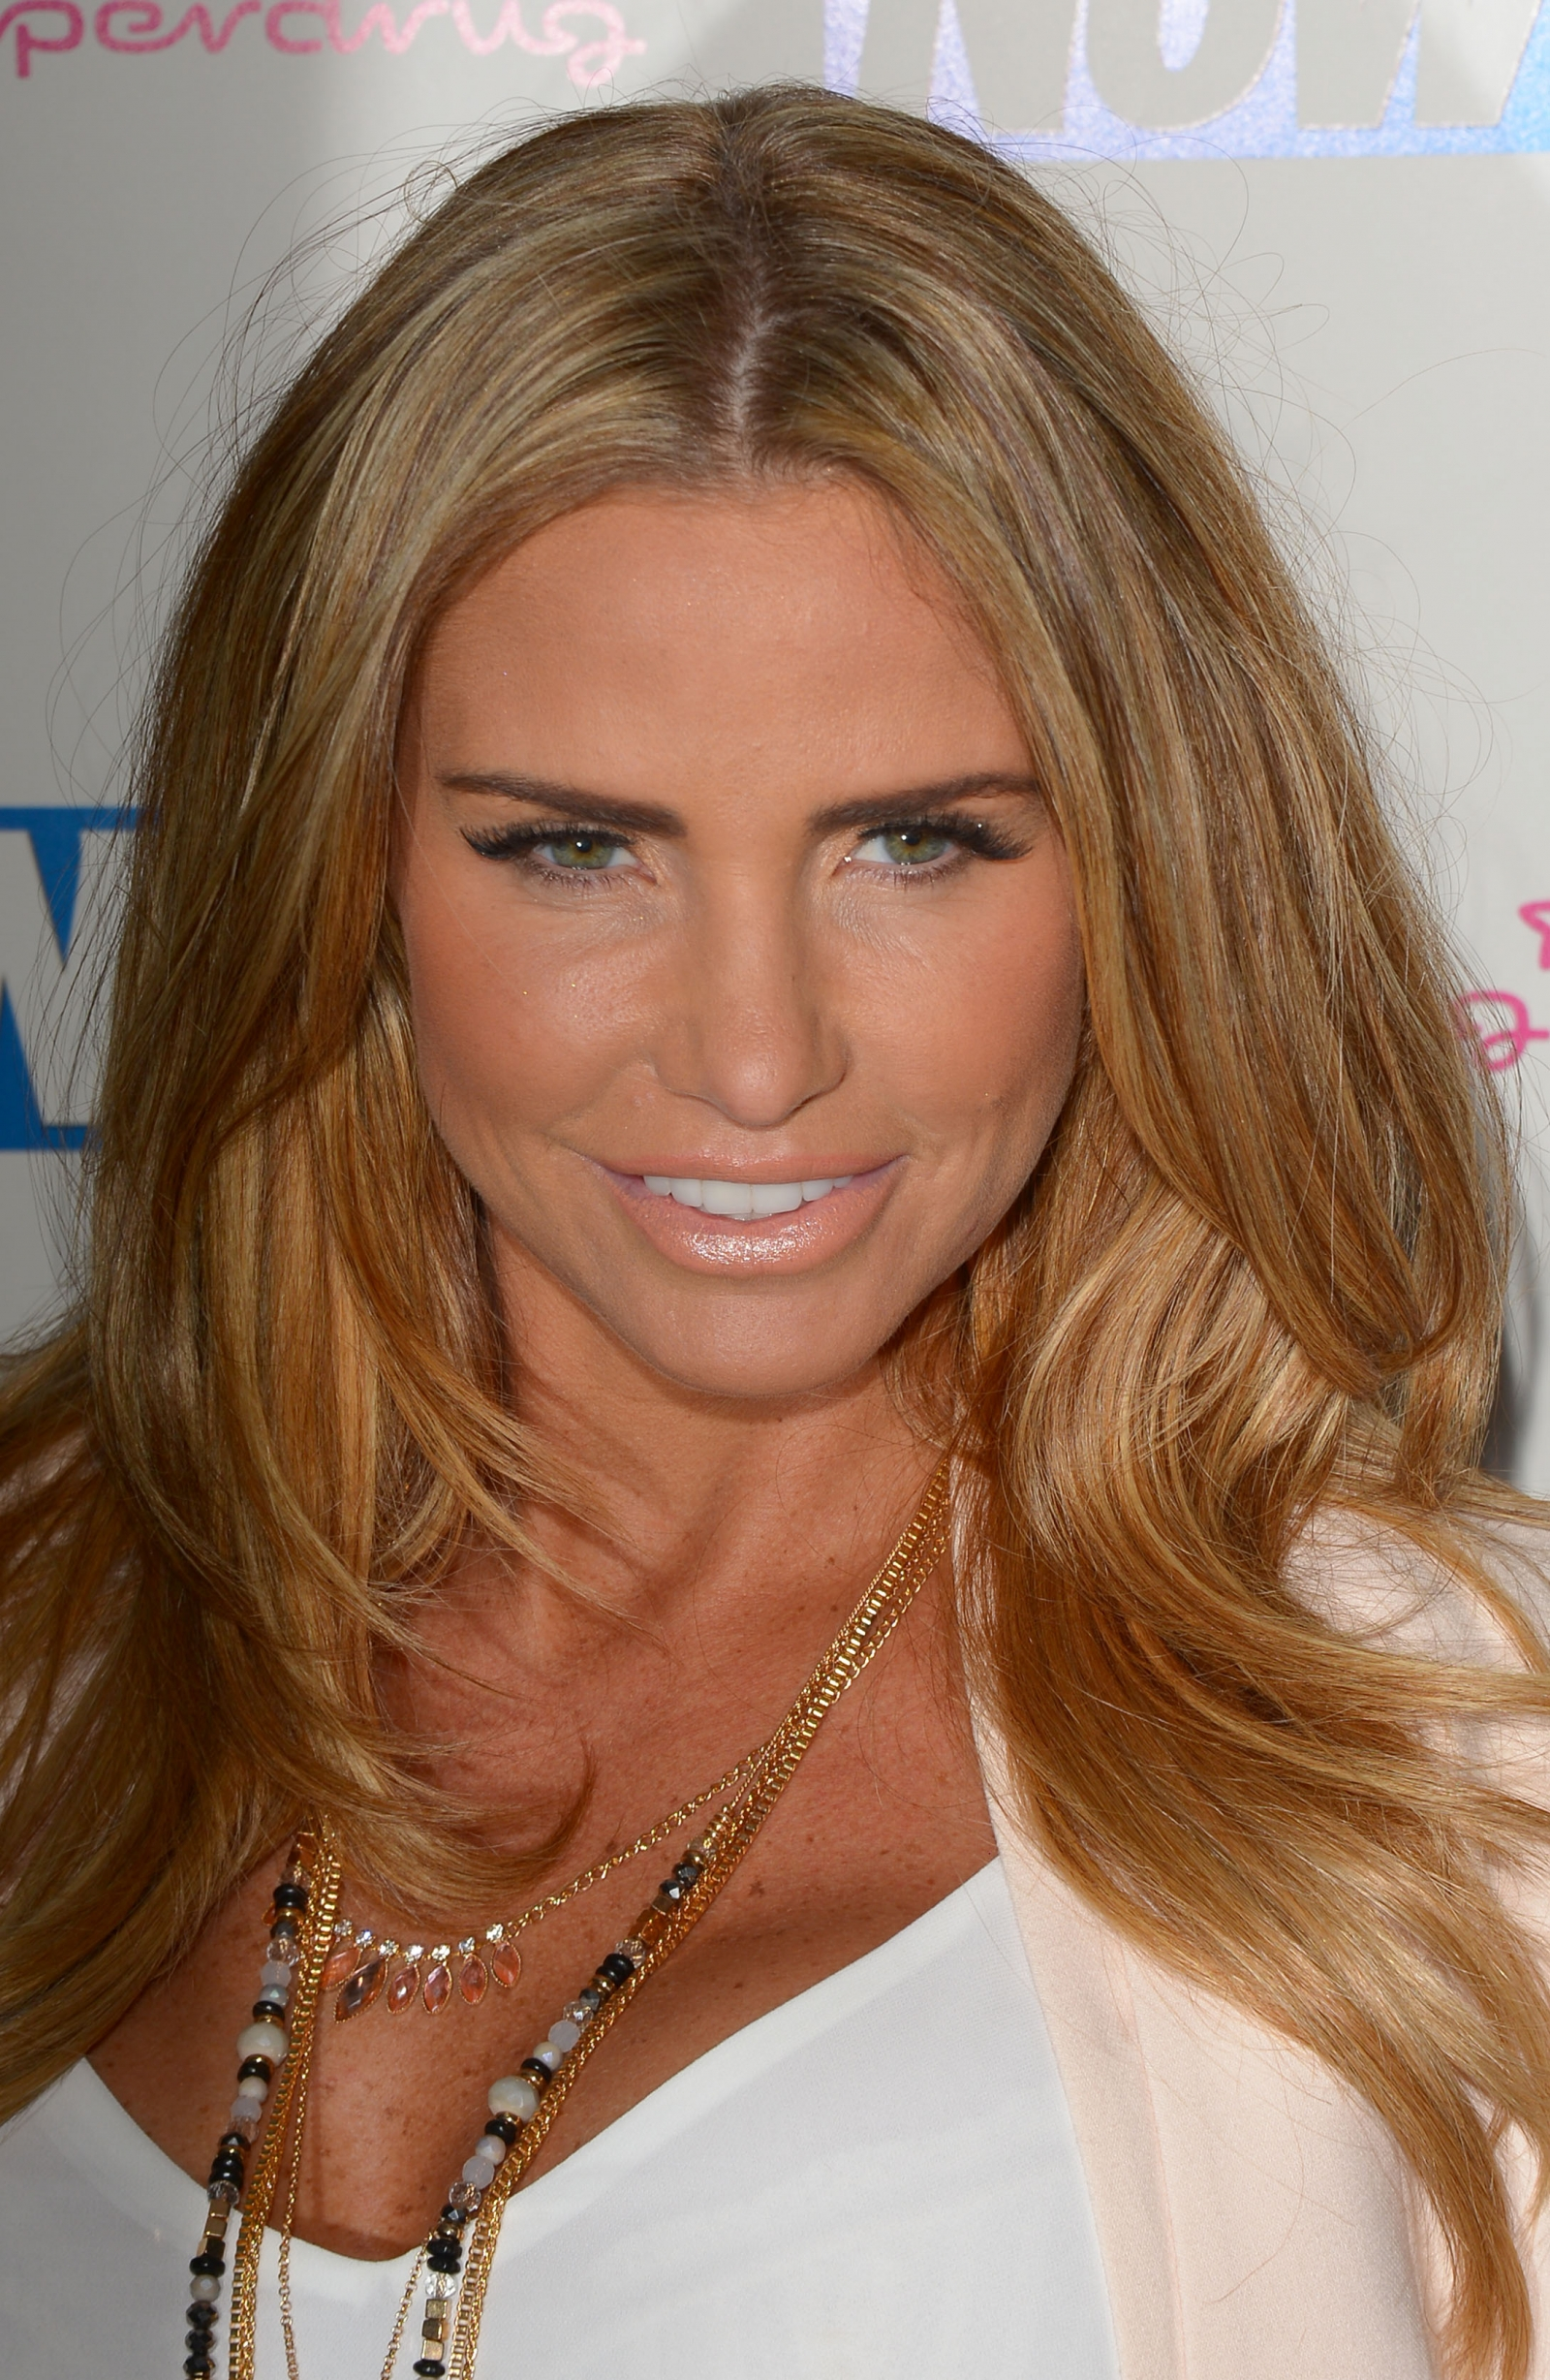 katie price - photo #36